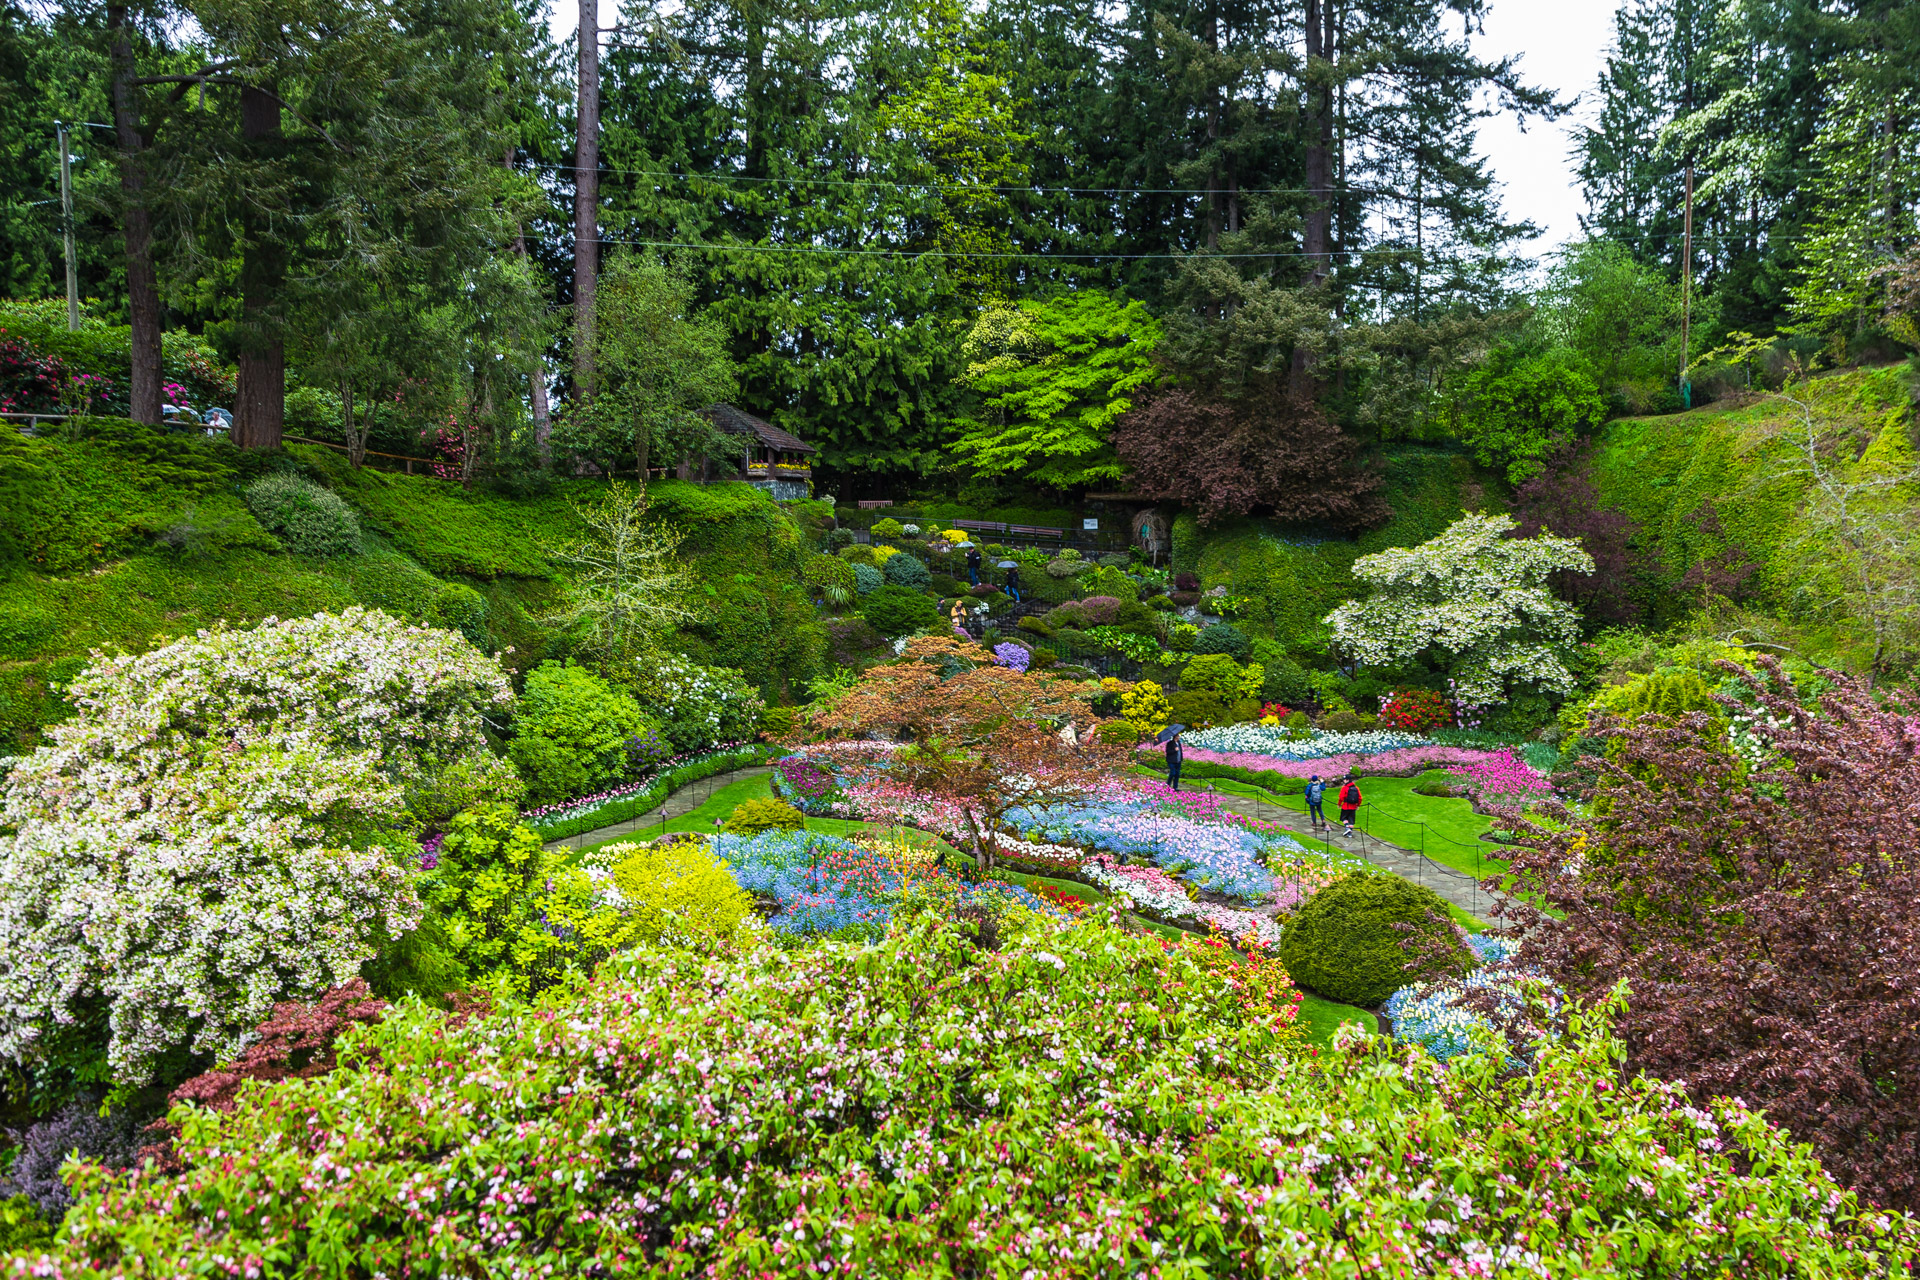 A Beautiful Rainy Day At The Butchart Gardens